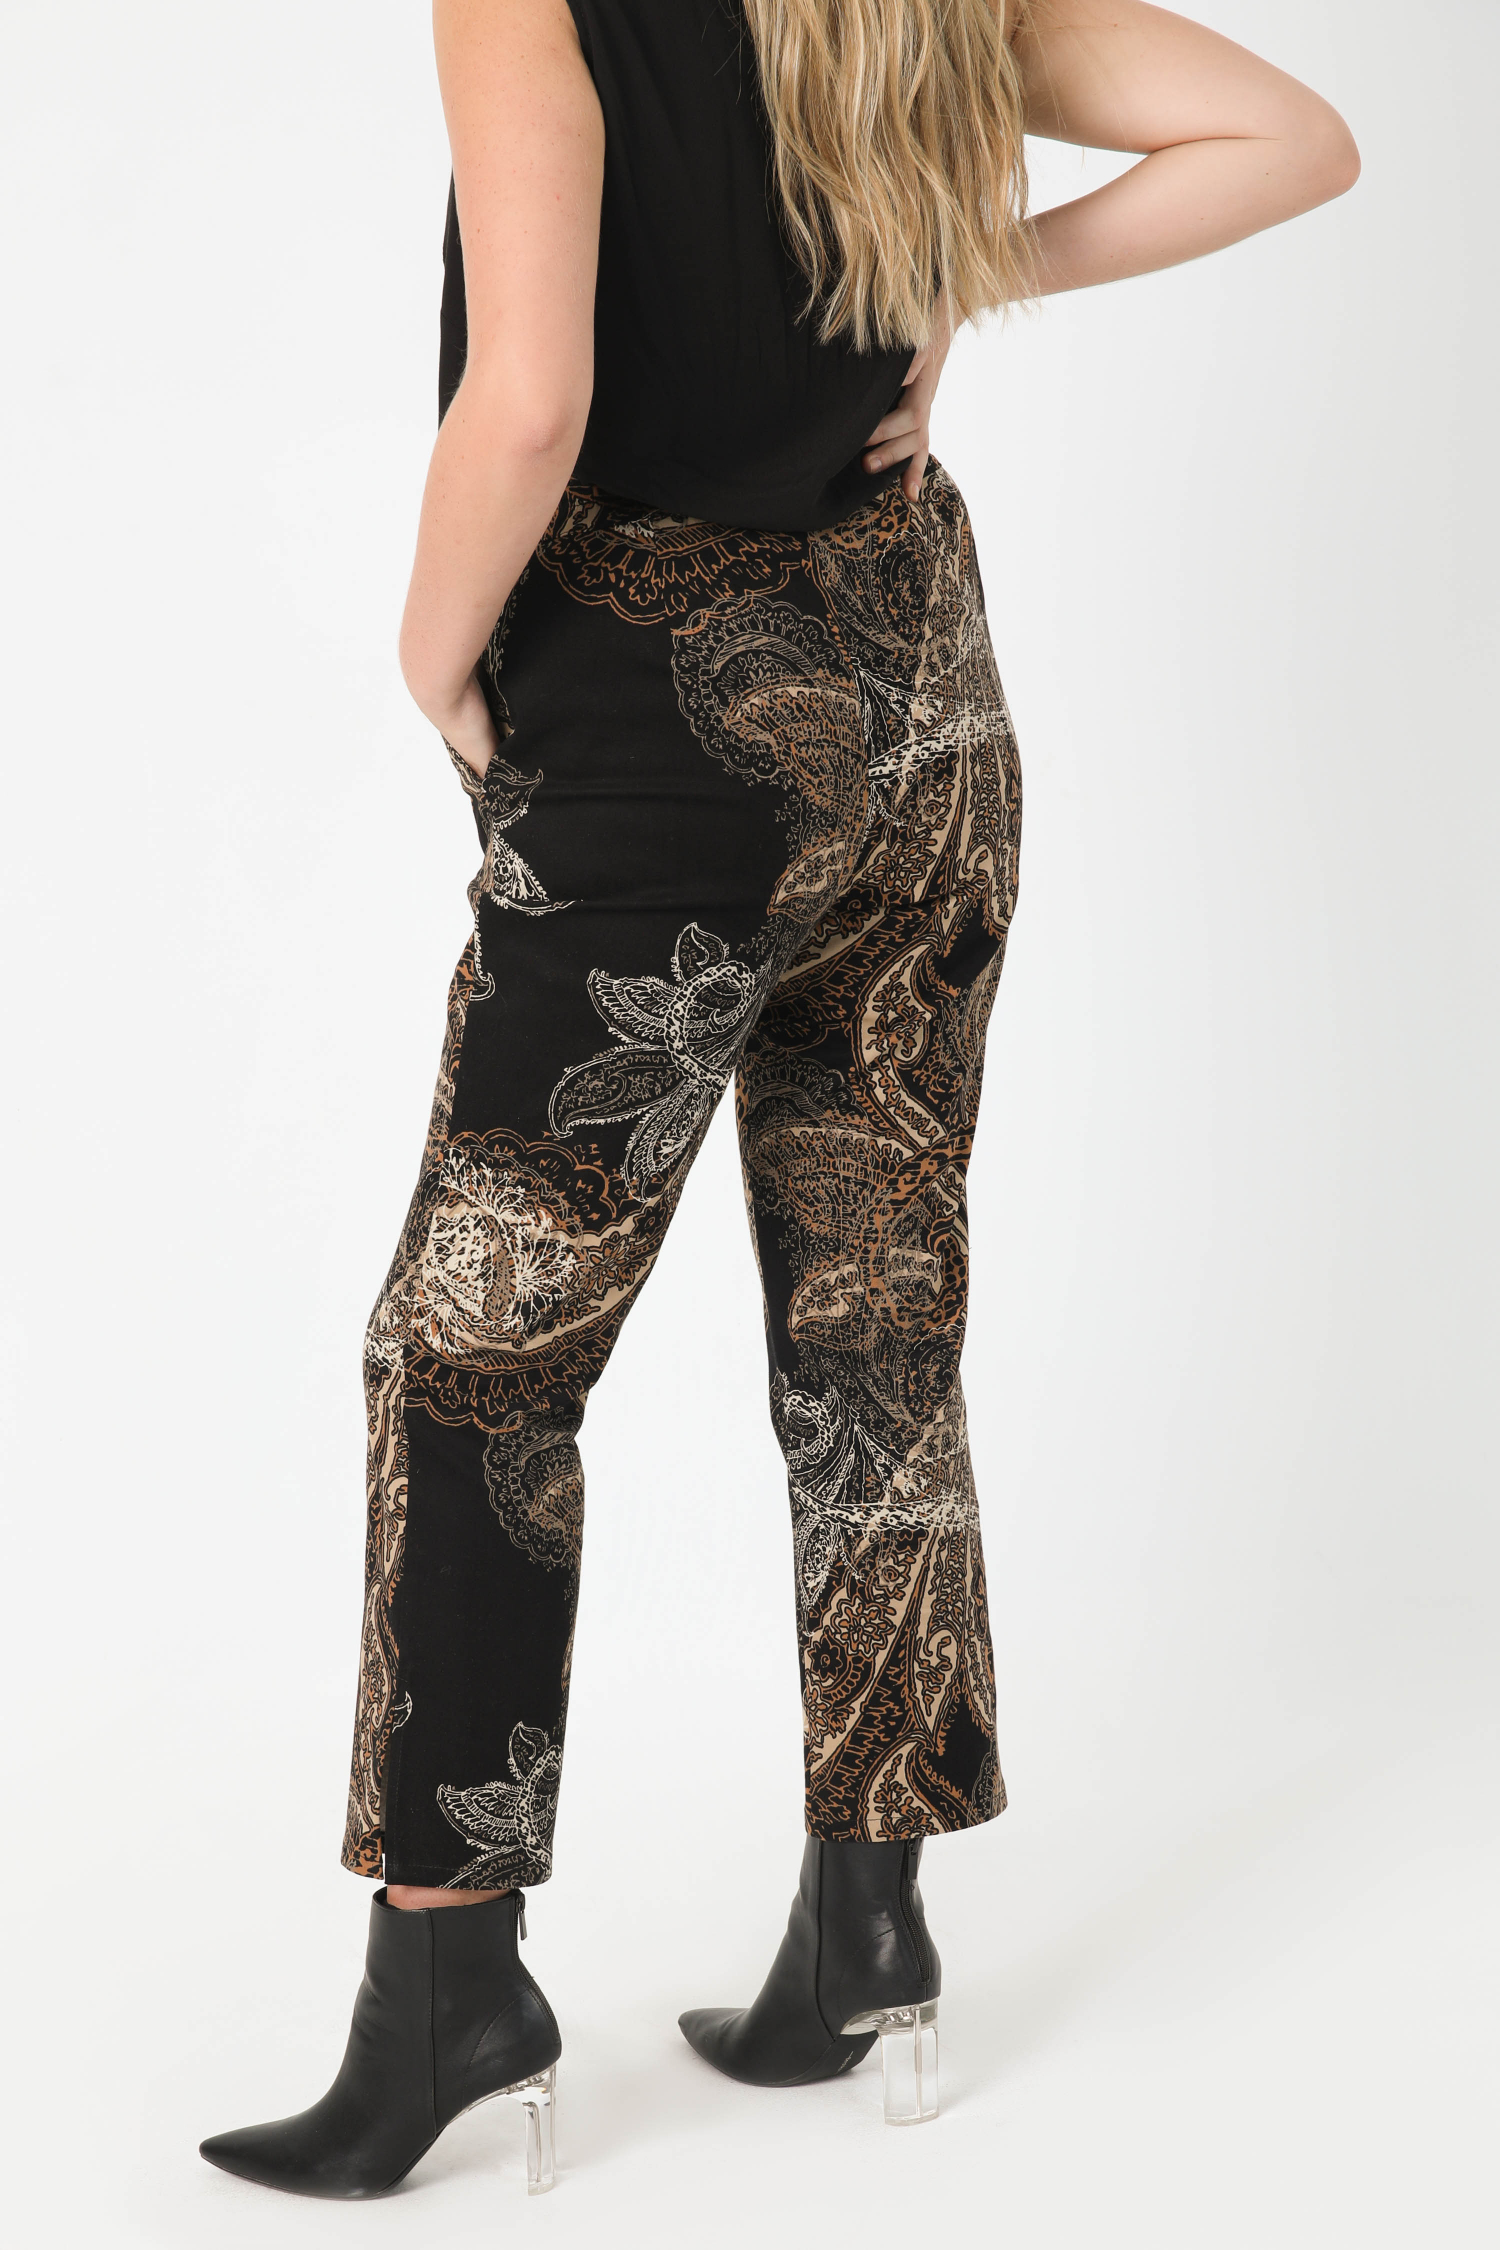 corduroy pants printed with oeko-tex fabric (shipping October 25/30)